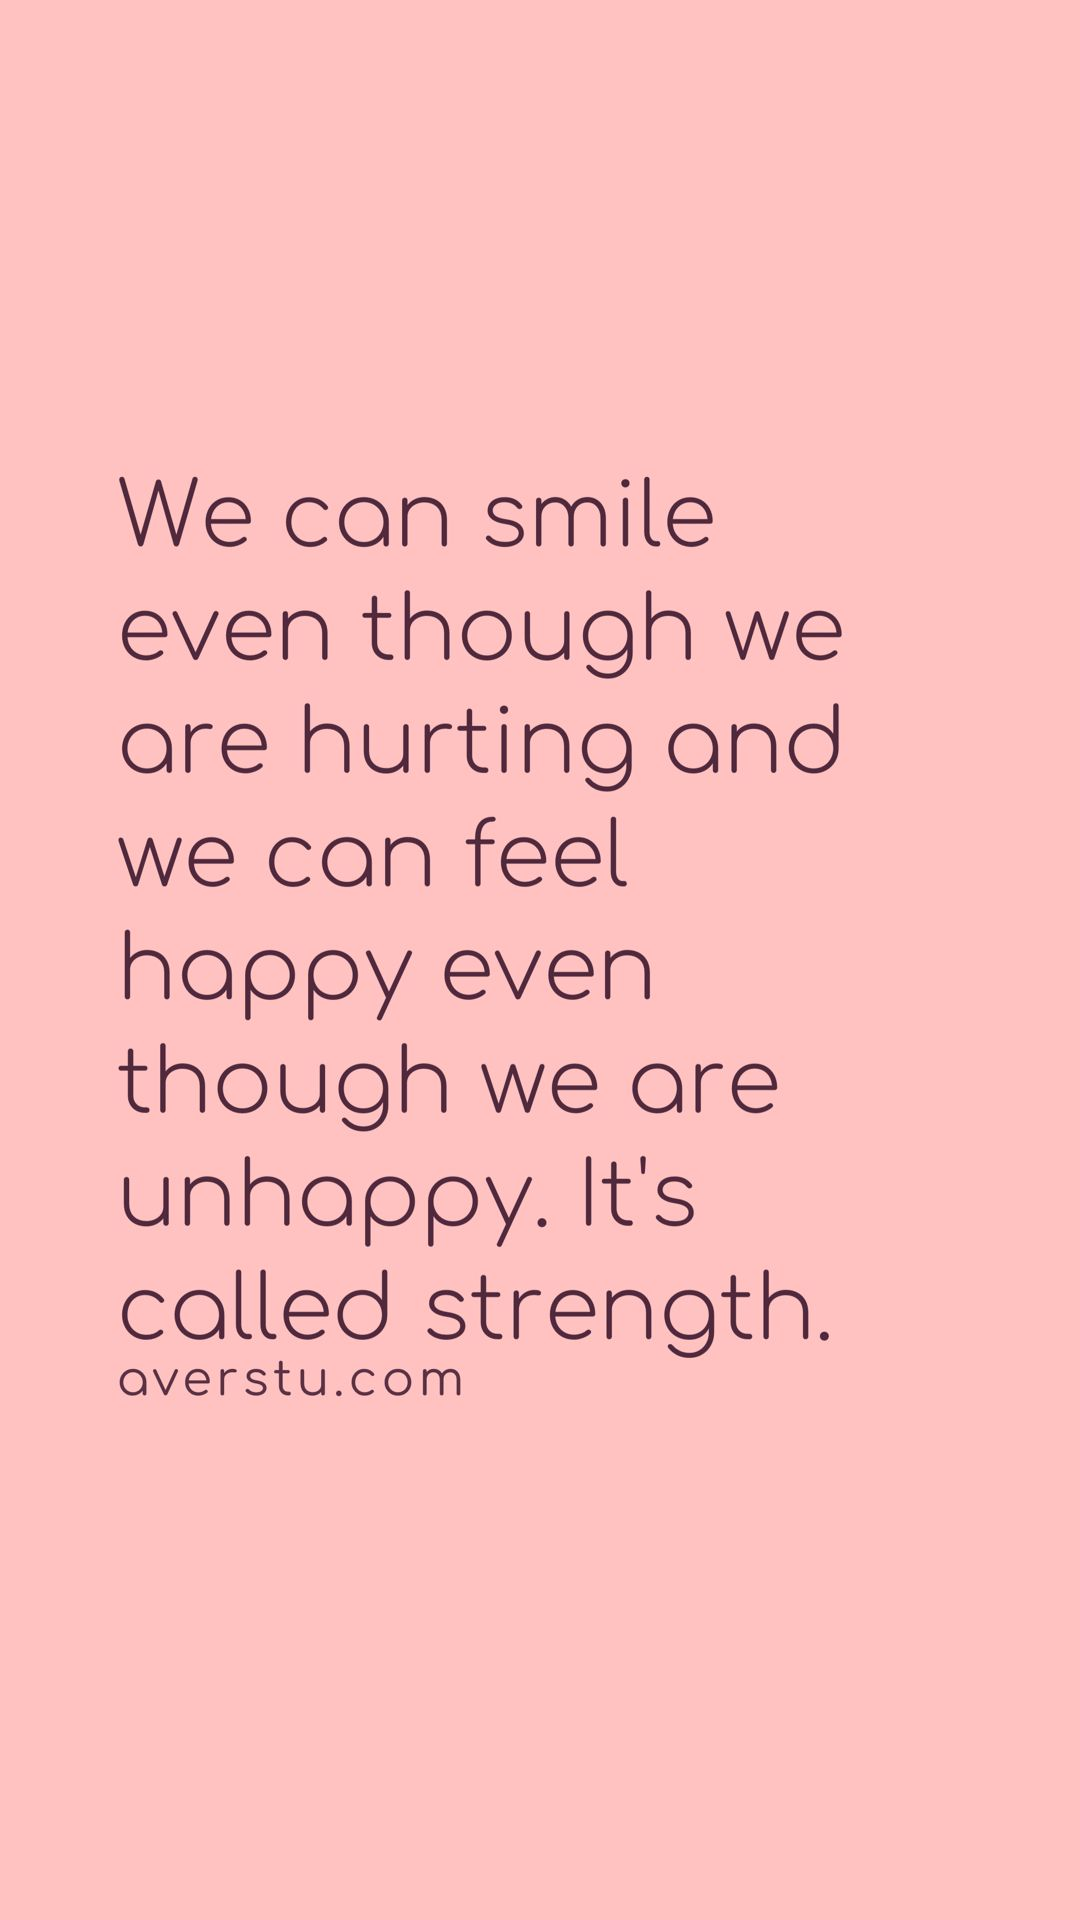 We Can Smile Even Though We Are Hurting And We Can Feel Happy Even